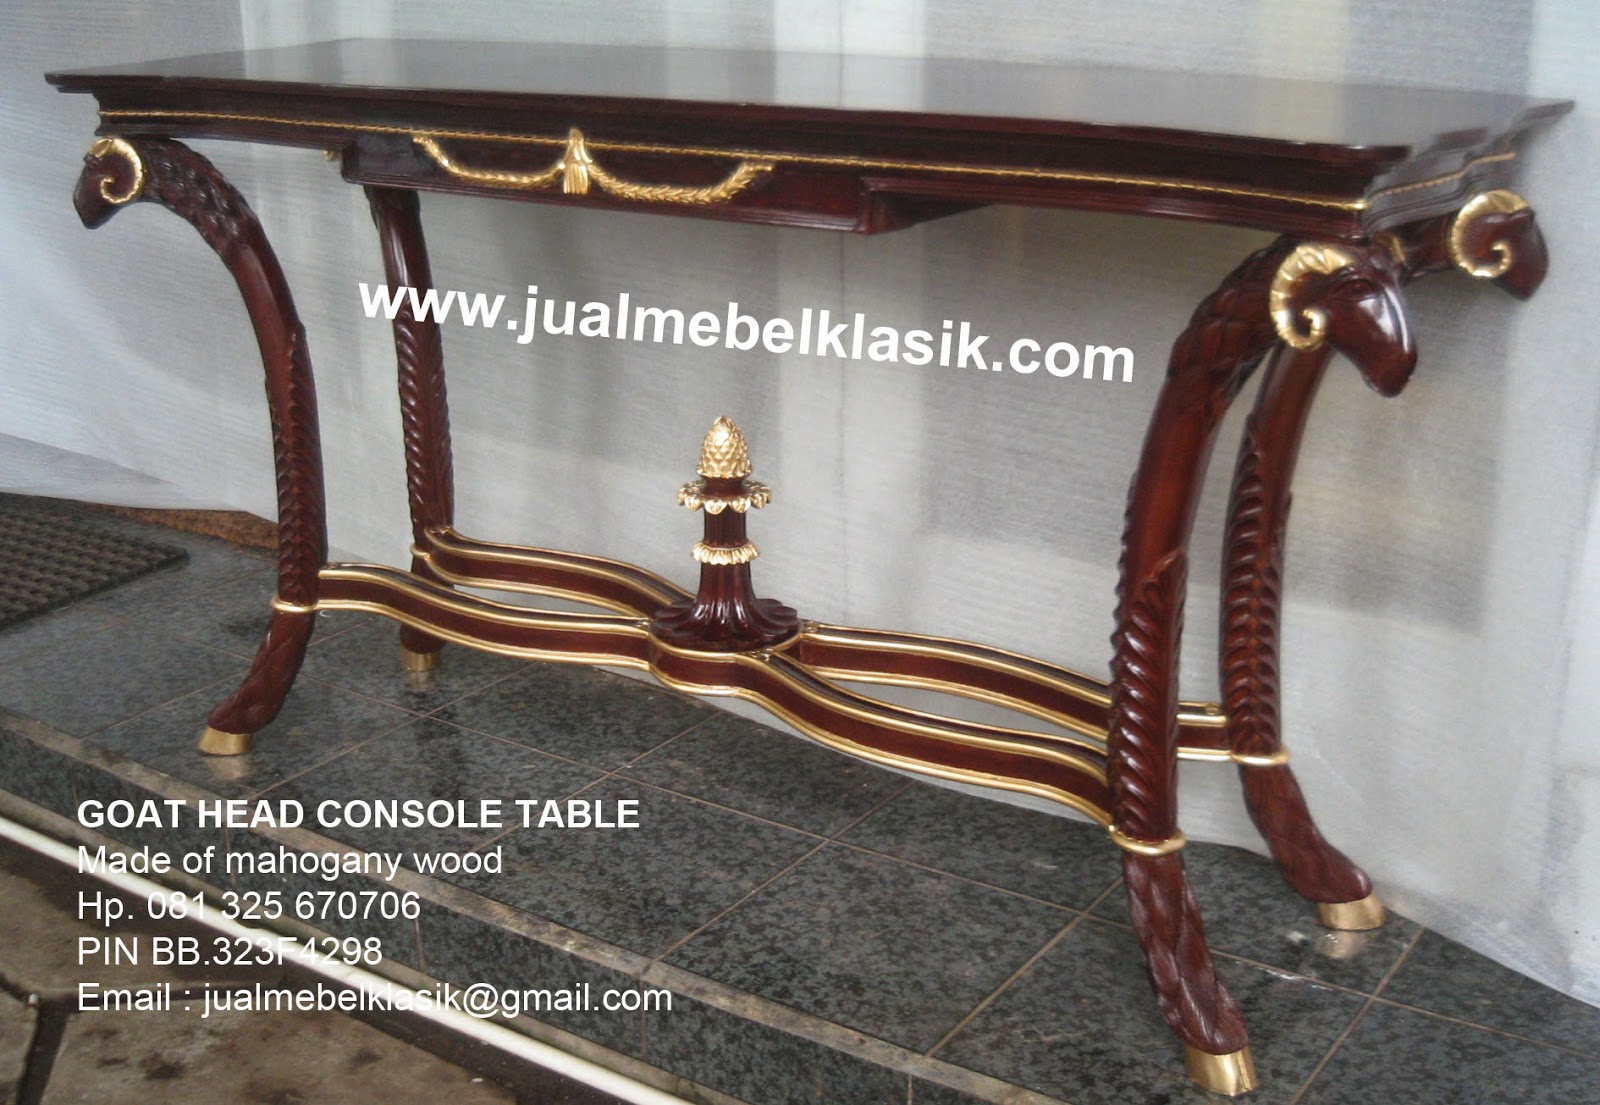 Supplier mebel klasik supplier console table supplier classic console table supplier goat head console table mahogany supplier cosole table jepara